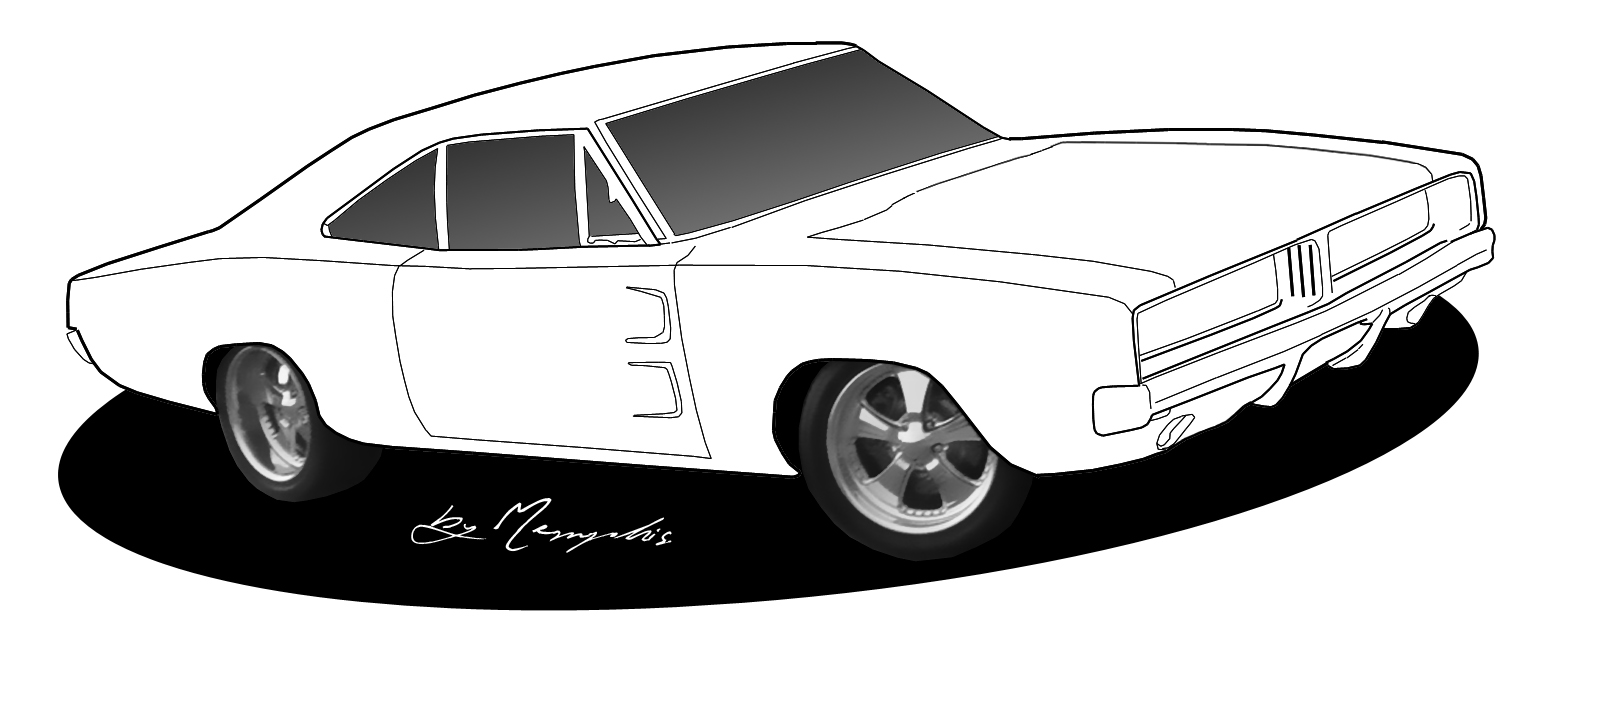 colouring in cars color in your favorit coloring pages of cars with some cars colouring in